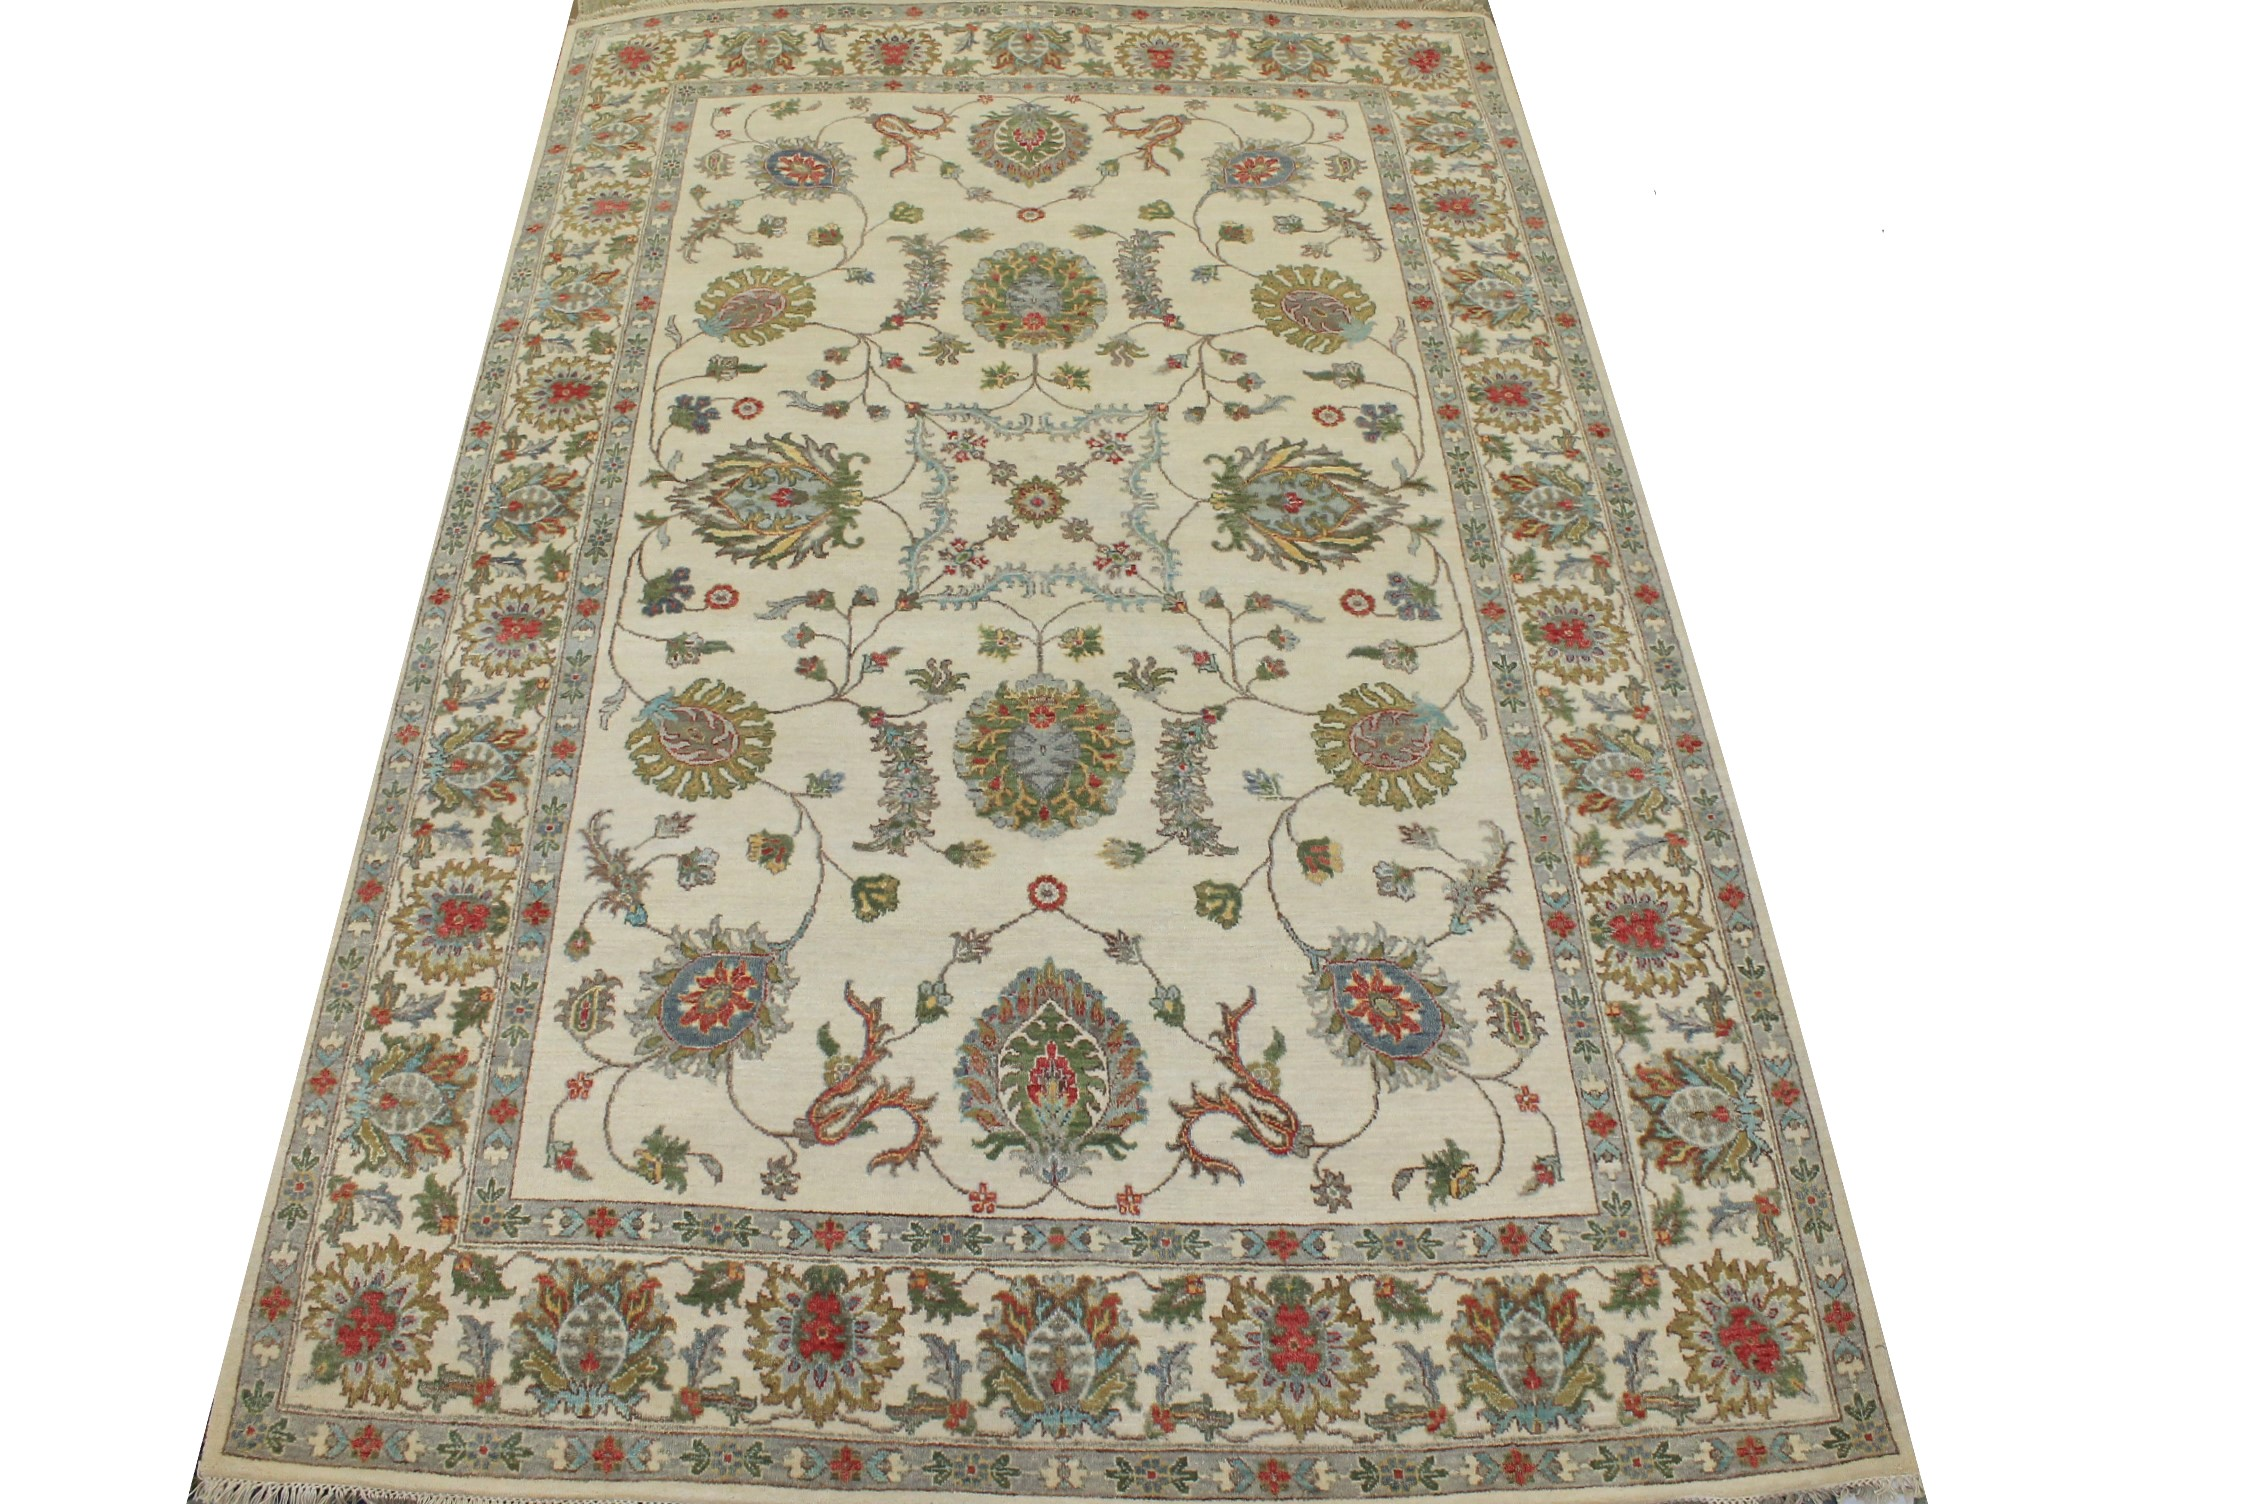 6x9 Traditional Hand Knotted Wool Area Rug - MR025213